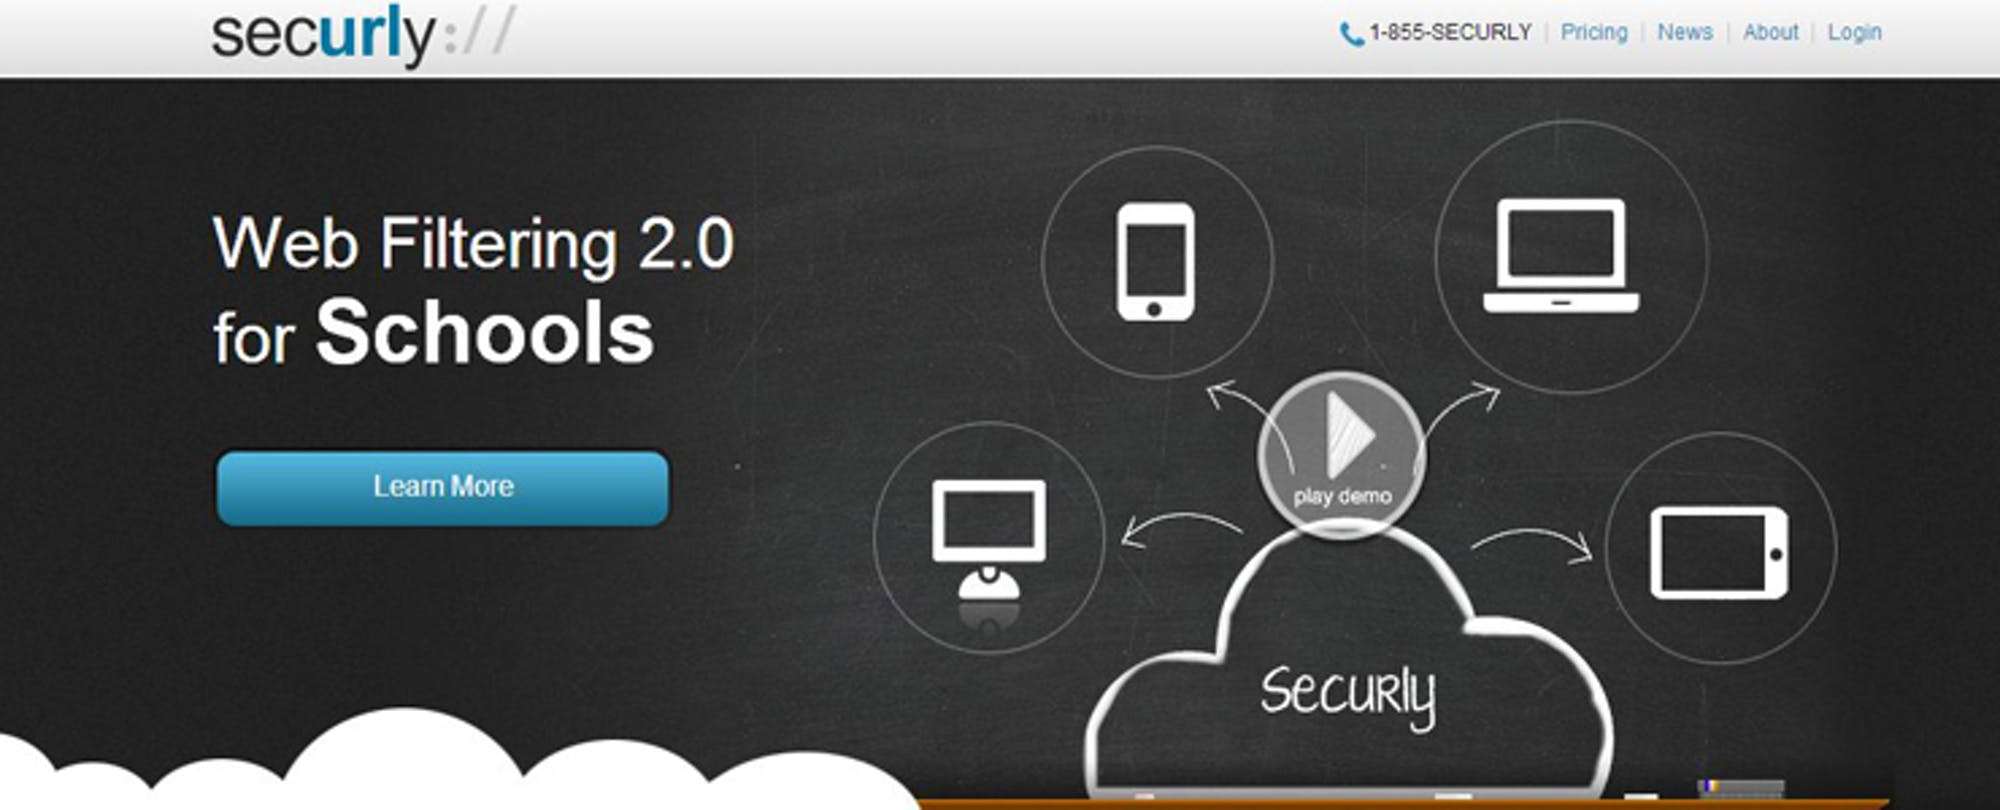 Securly Raises Over $1M to Safeguard School Internet